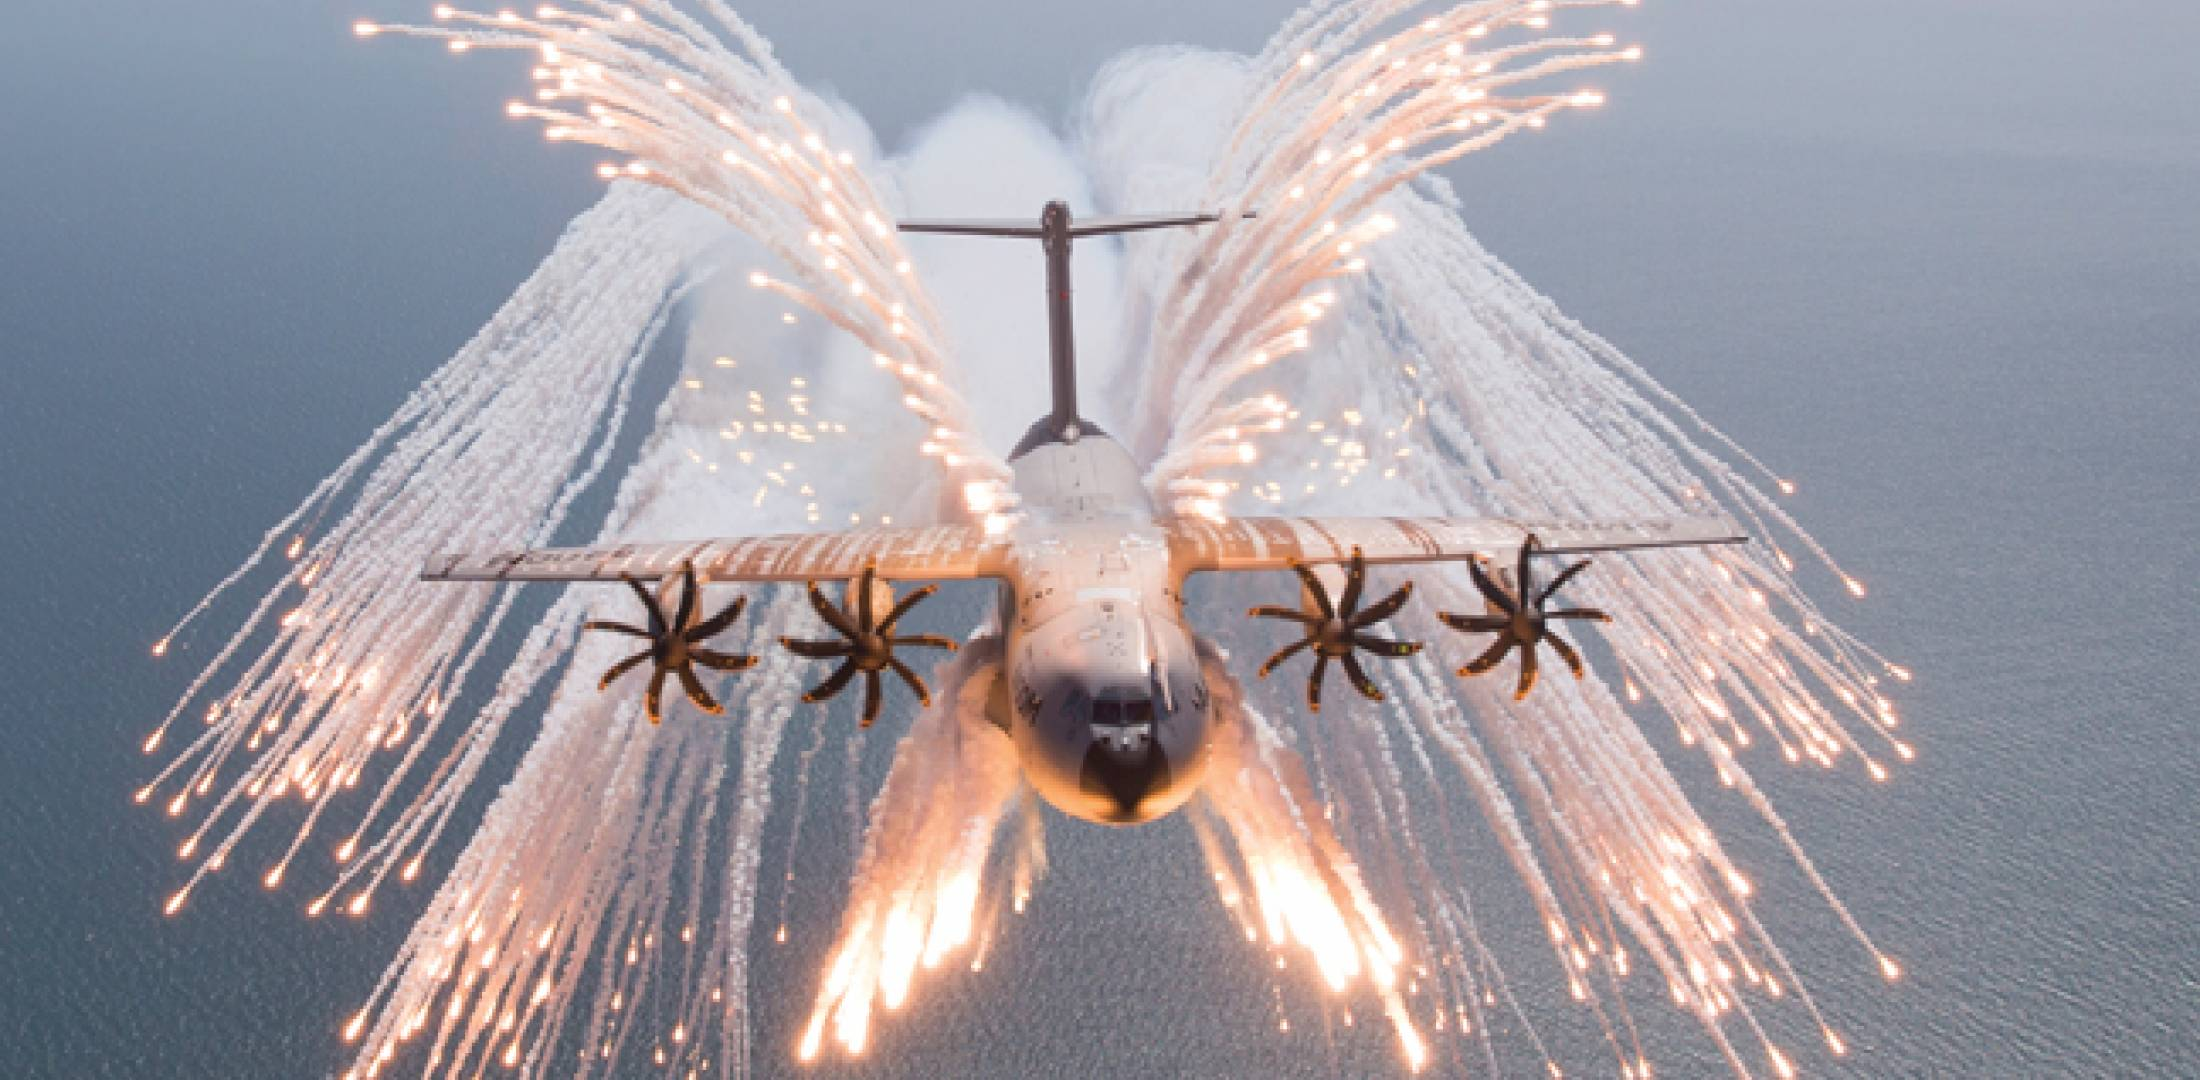 Flare dispenser trials culminated in this spectacular full flare jettison test of the Airbus A400M.